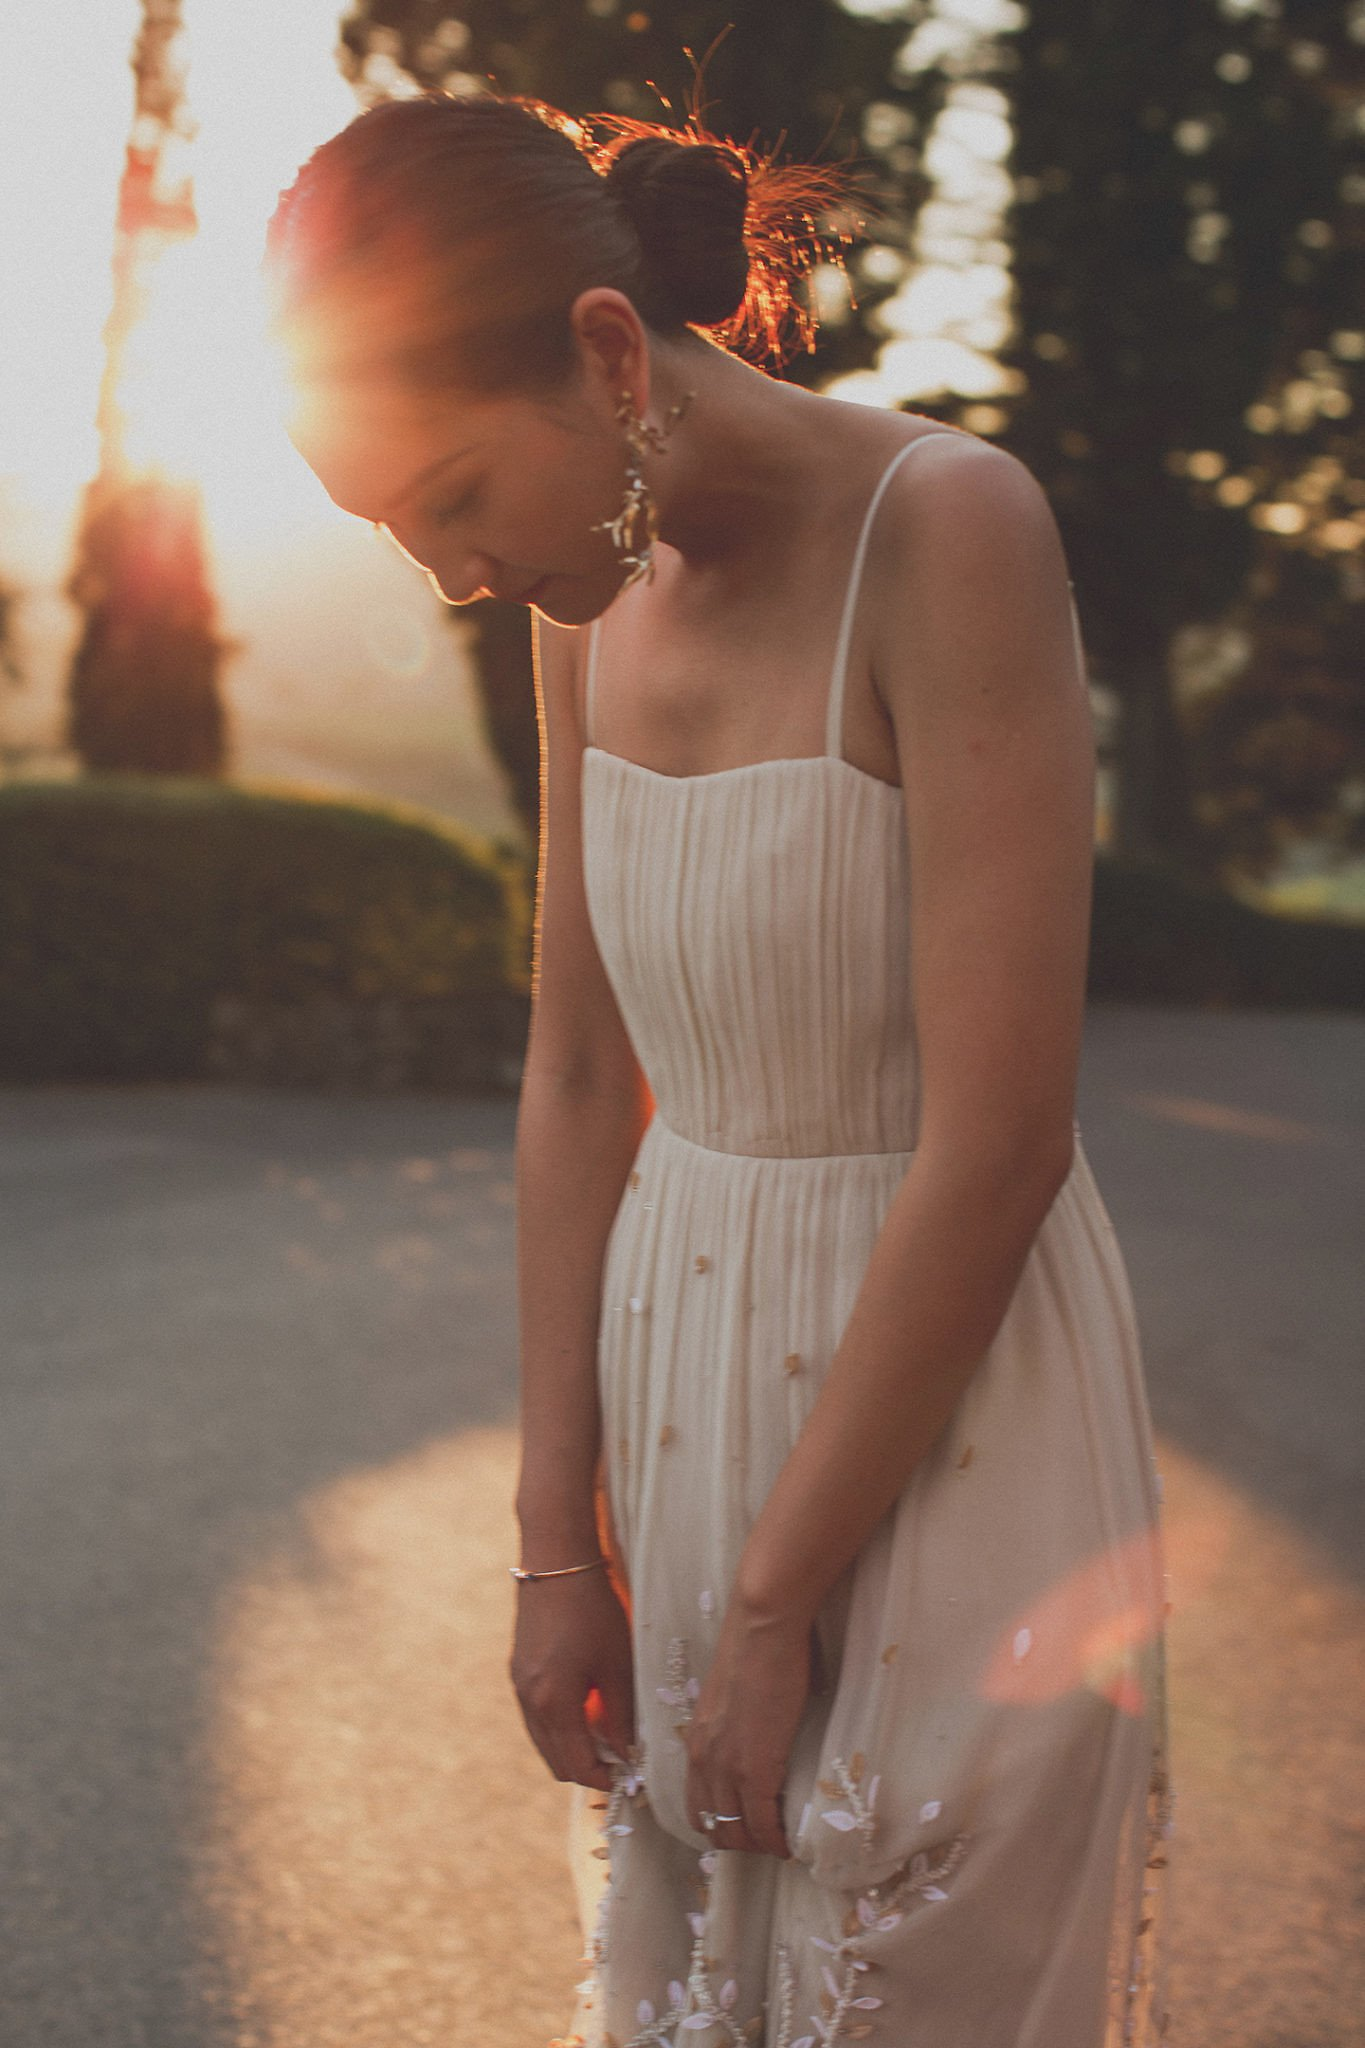 sunset-bride-to-be-portrait-vignamaggio-tuscany